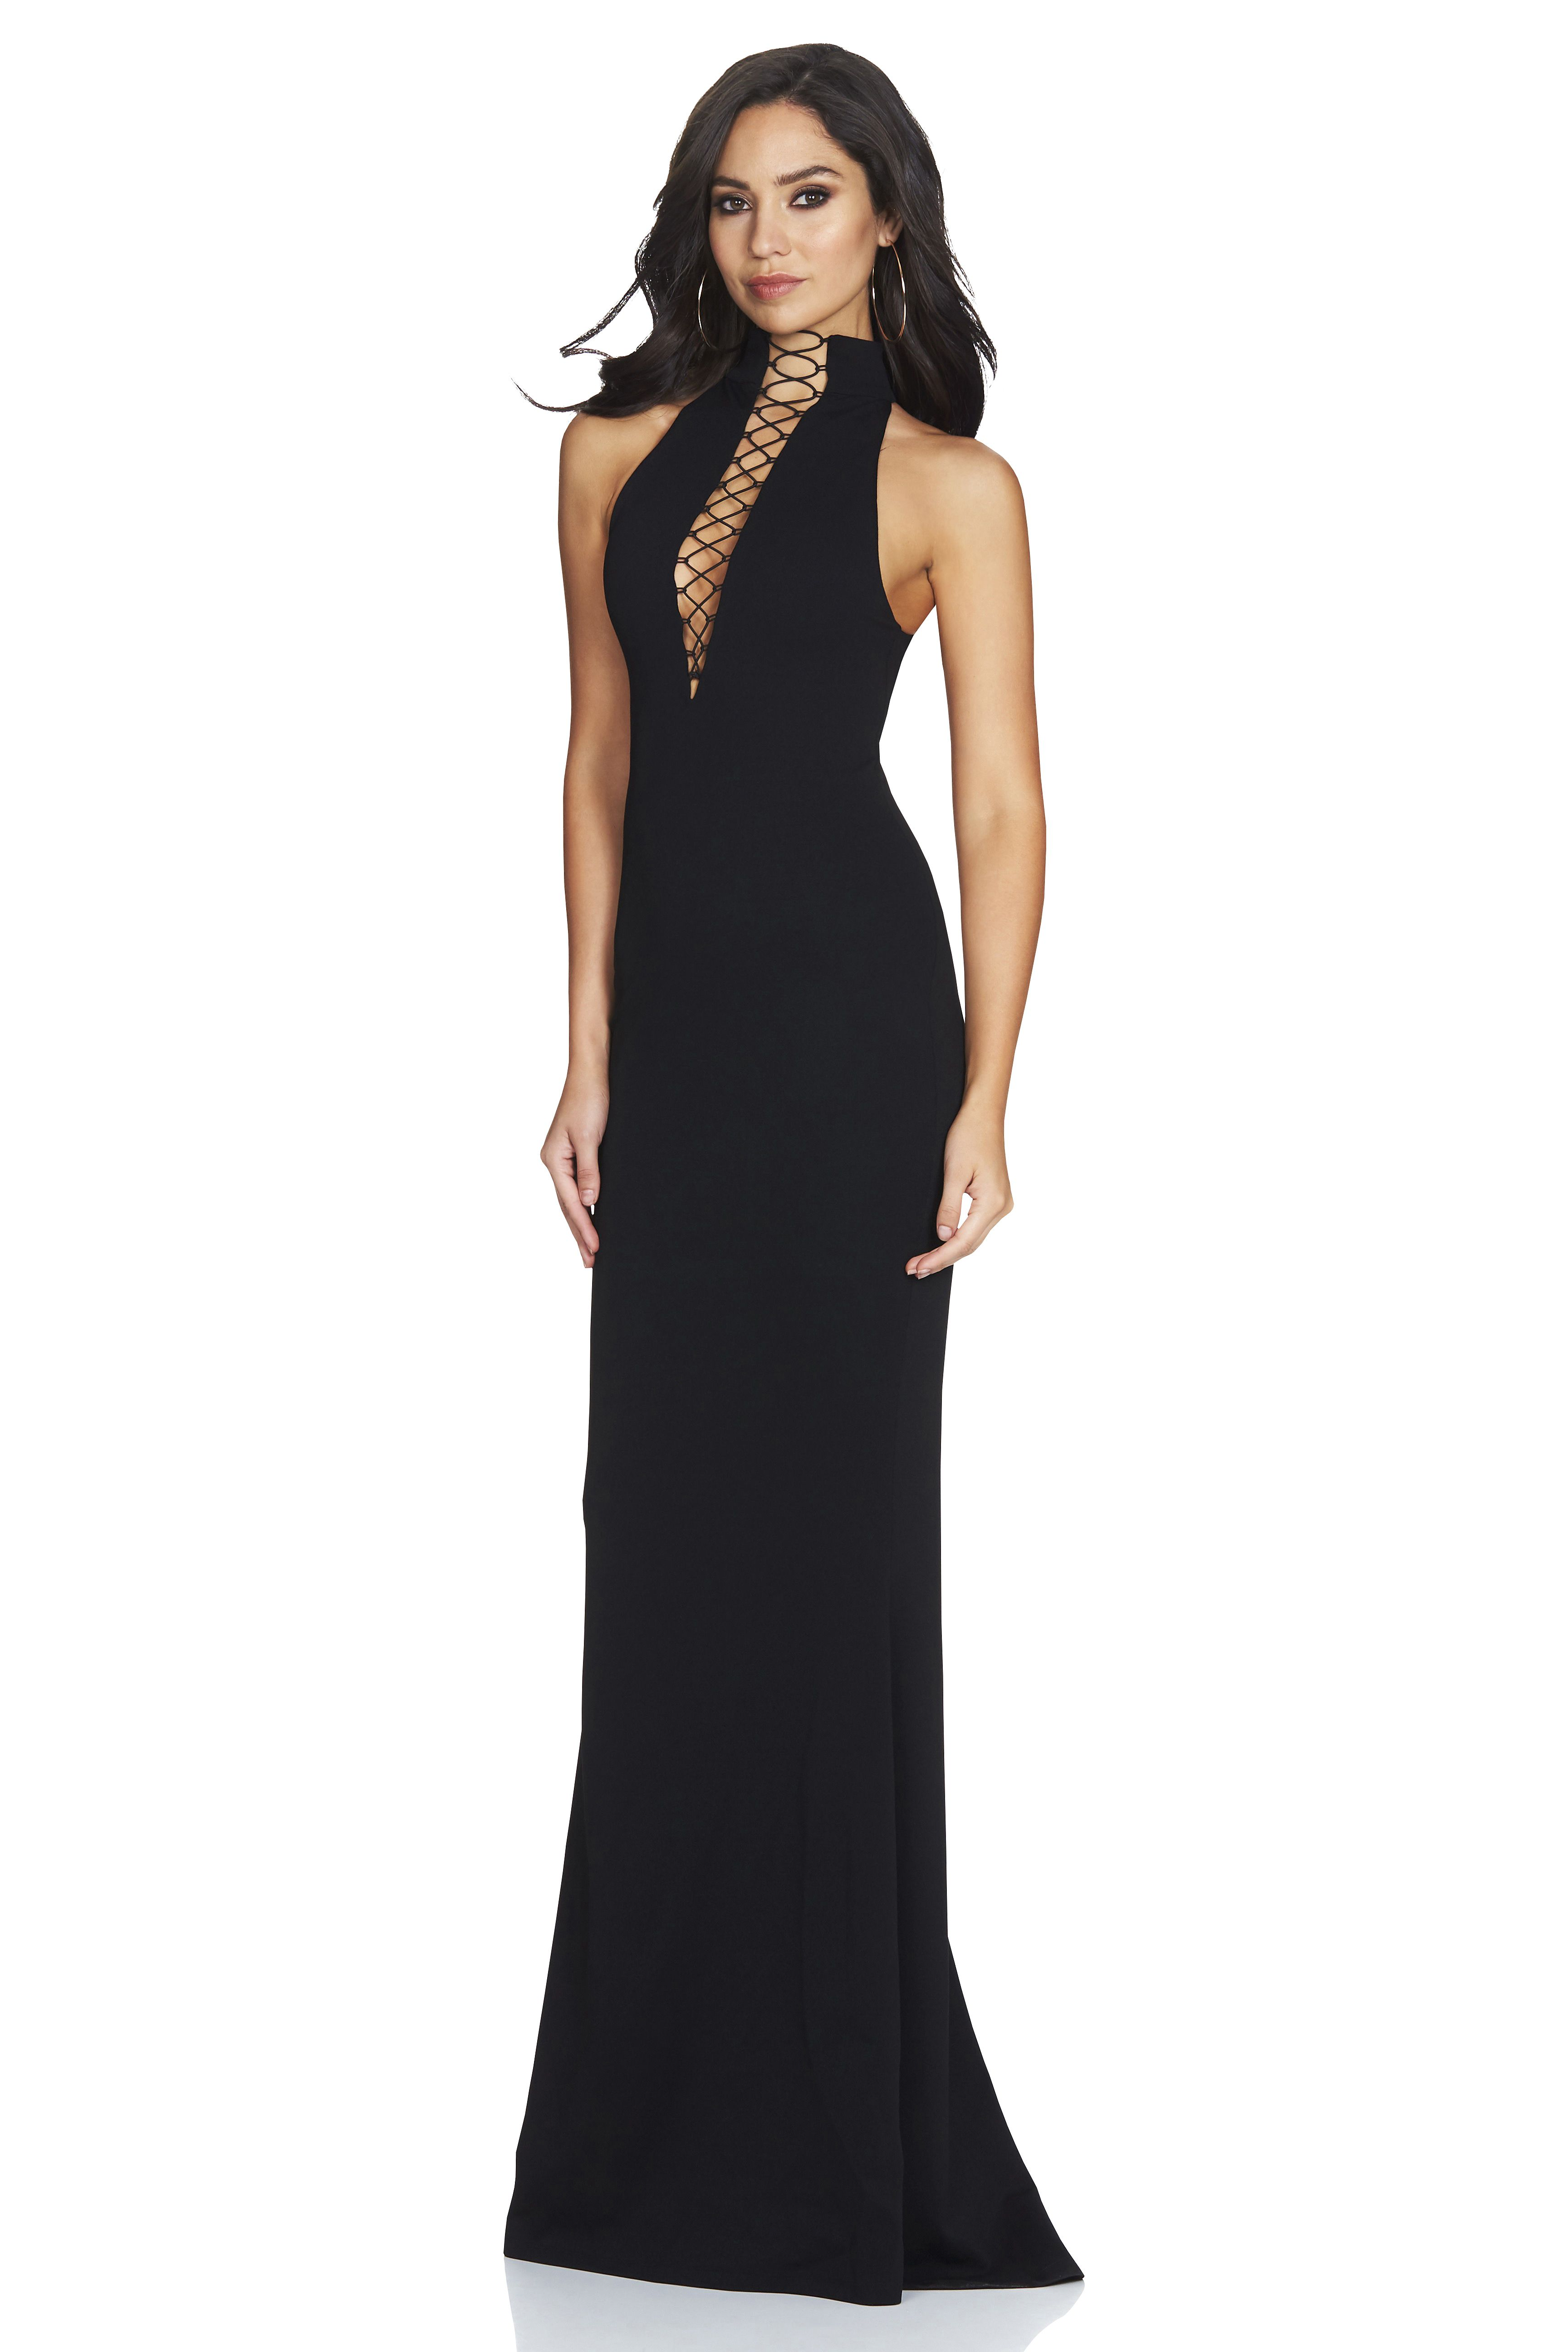 Whitney lace up gown gowns australia and black